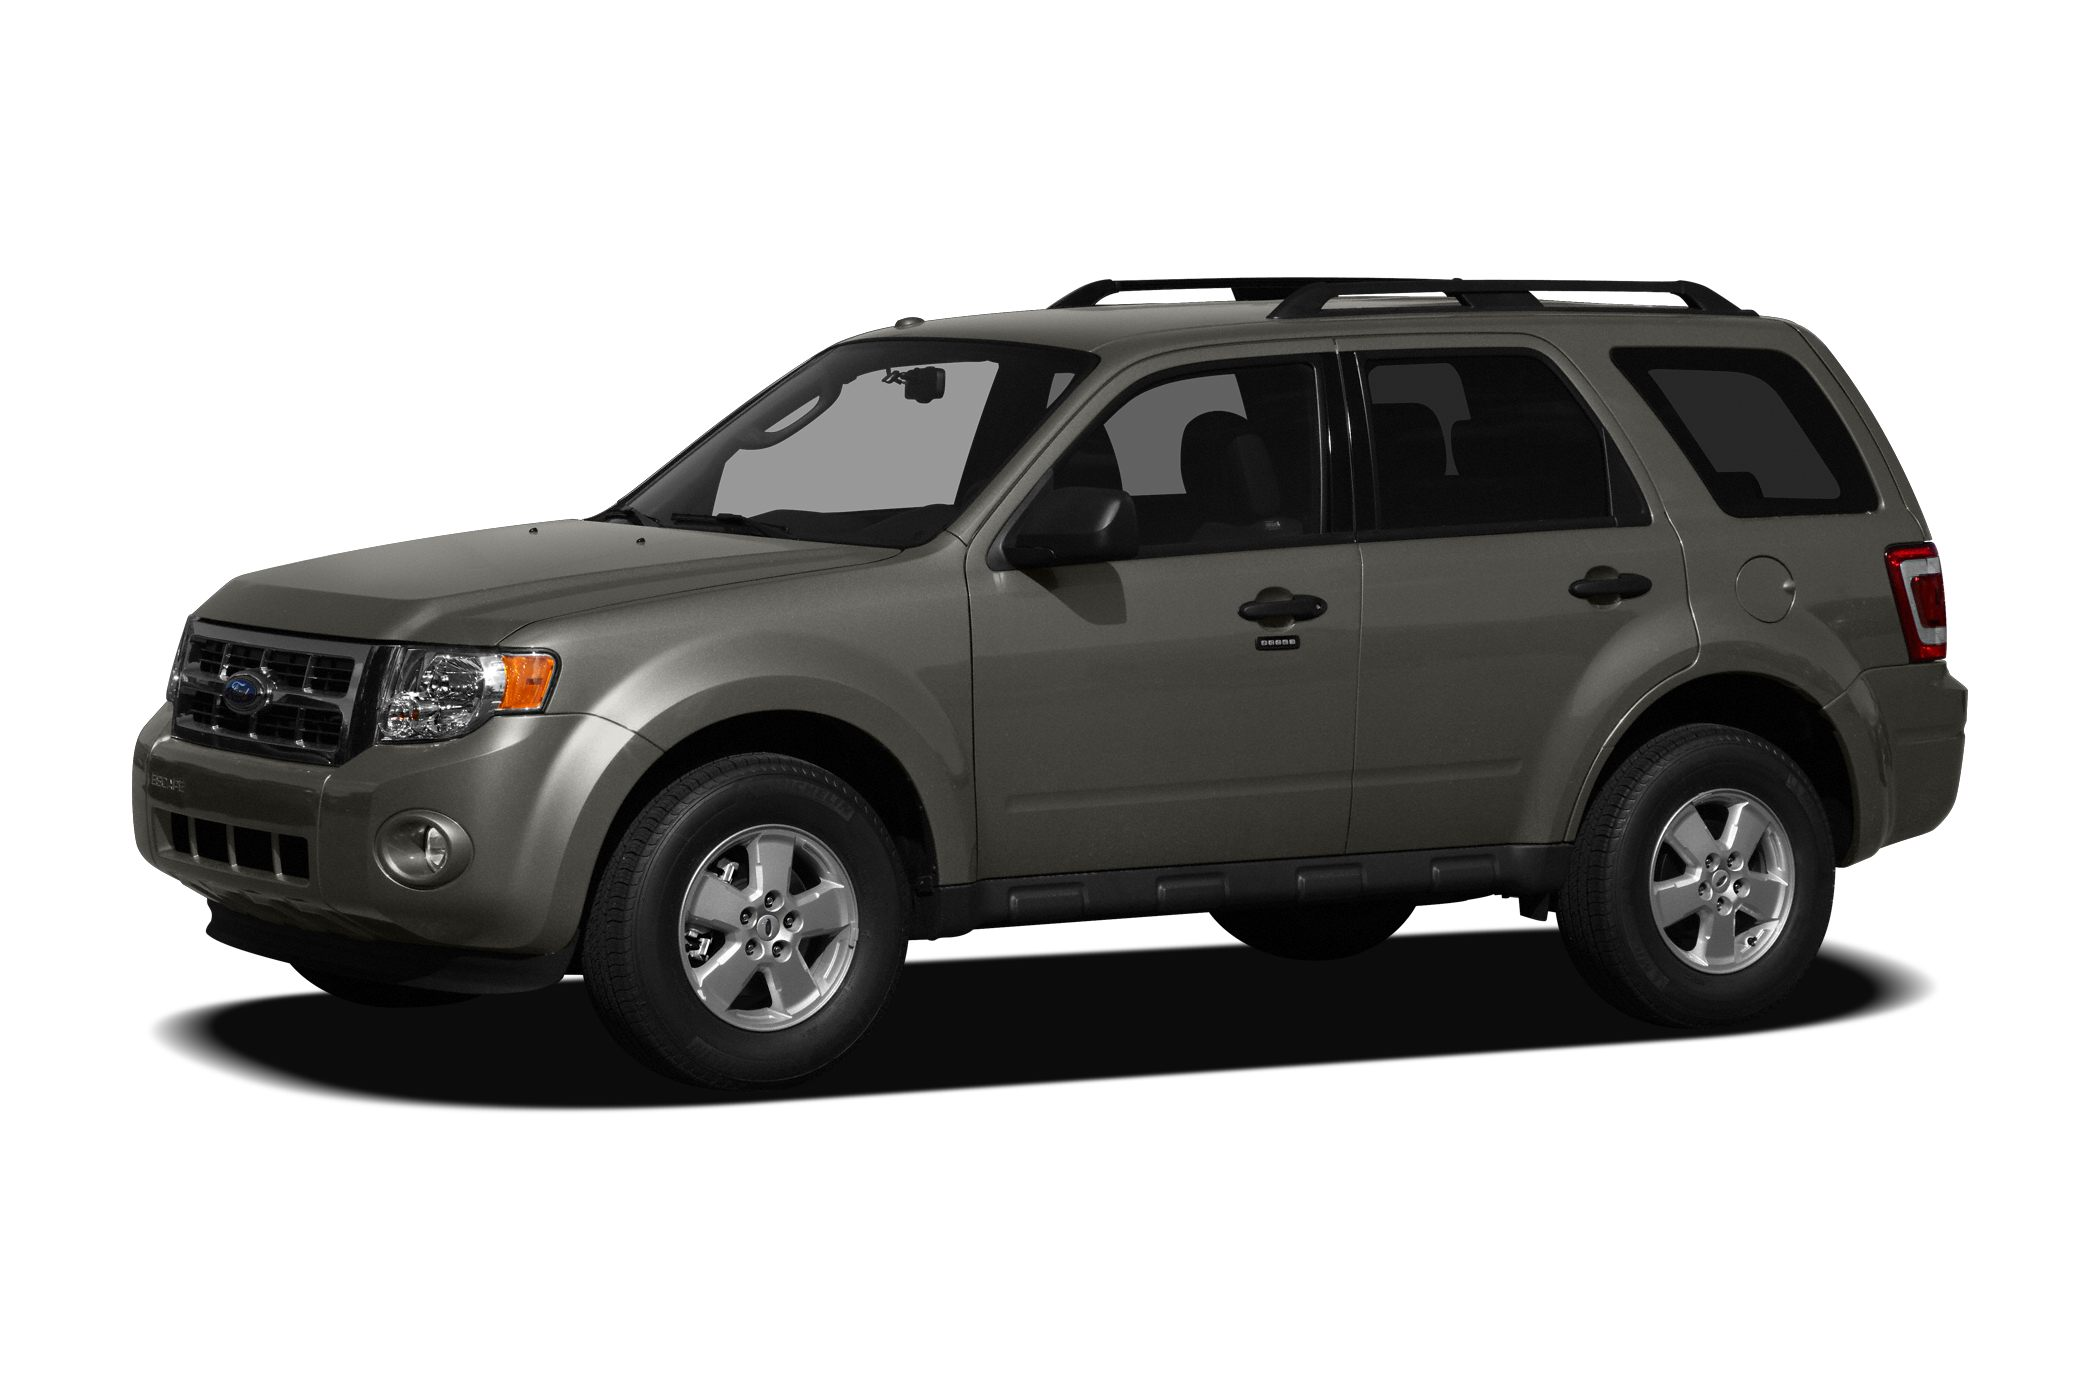 2009 Ford Escape XLT SUV for sale in Parsippany for $16,996 with 35,441 miles.